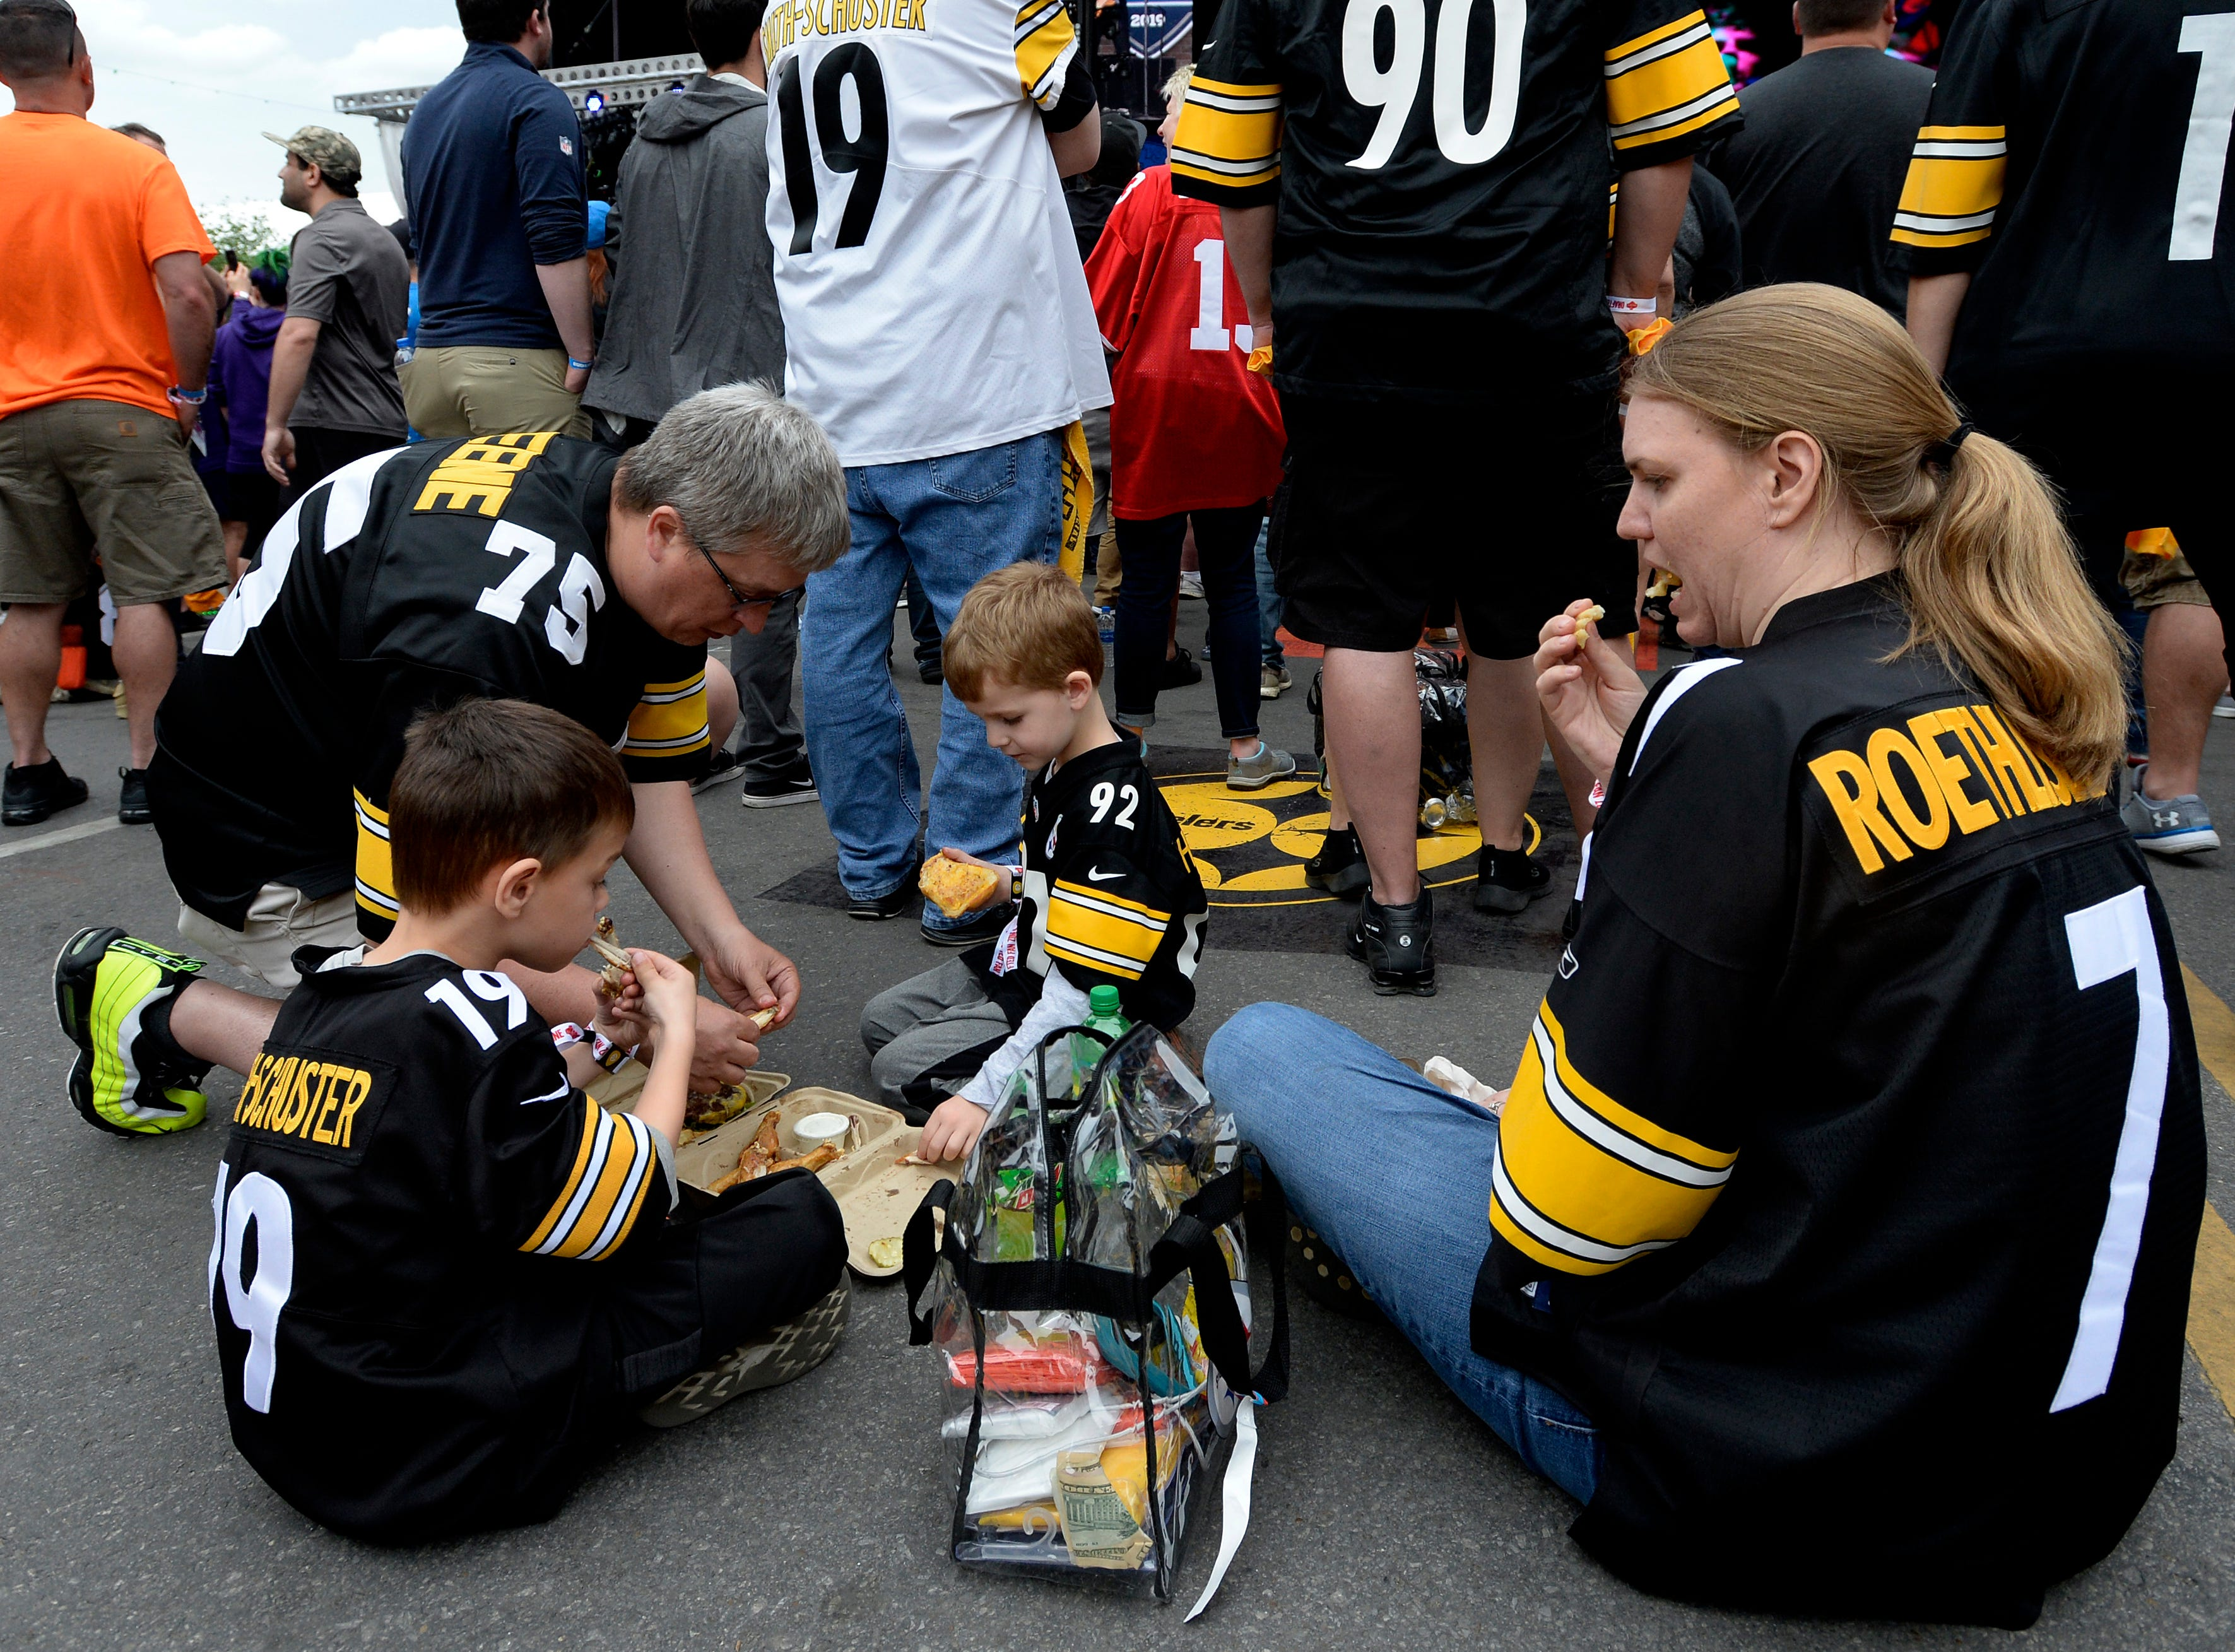 Pittsburgh Steelers fans Declan, 6, Walton, left, his father Dale, Killian, 5, and mother Dana eat on Lower Broadway during the NFL Draft on Thursday, April 25, 2019, in Nashville, Tenn.